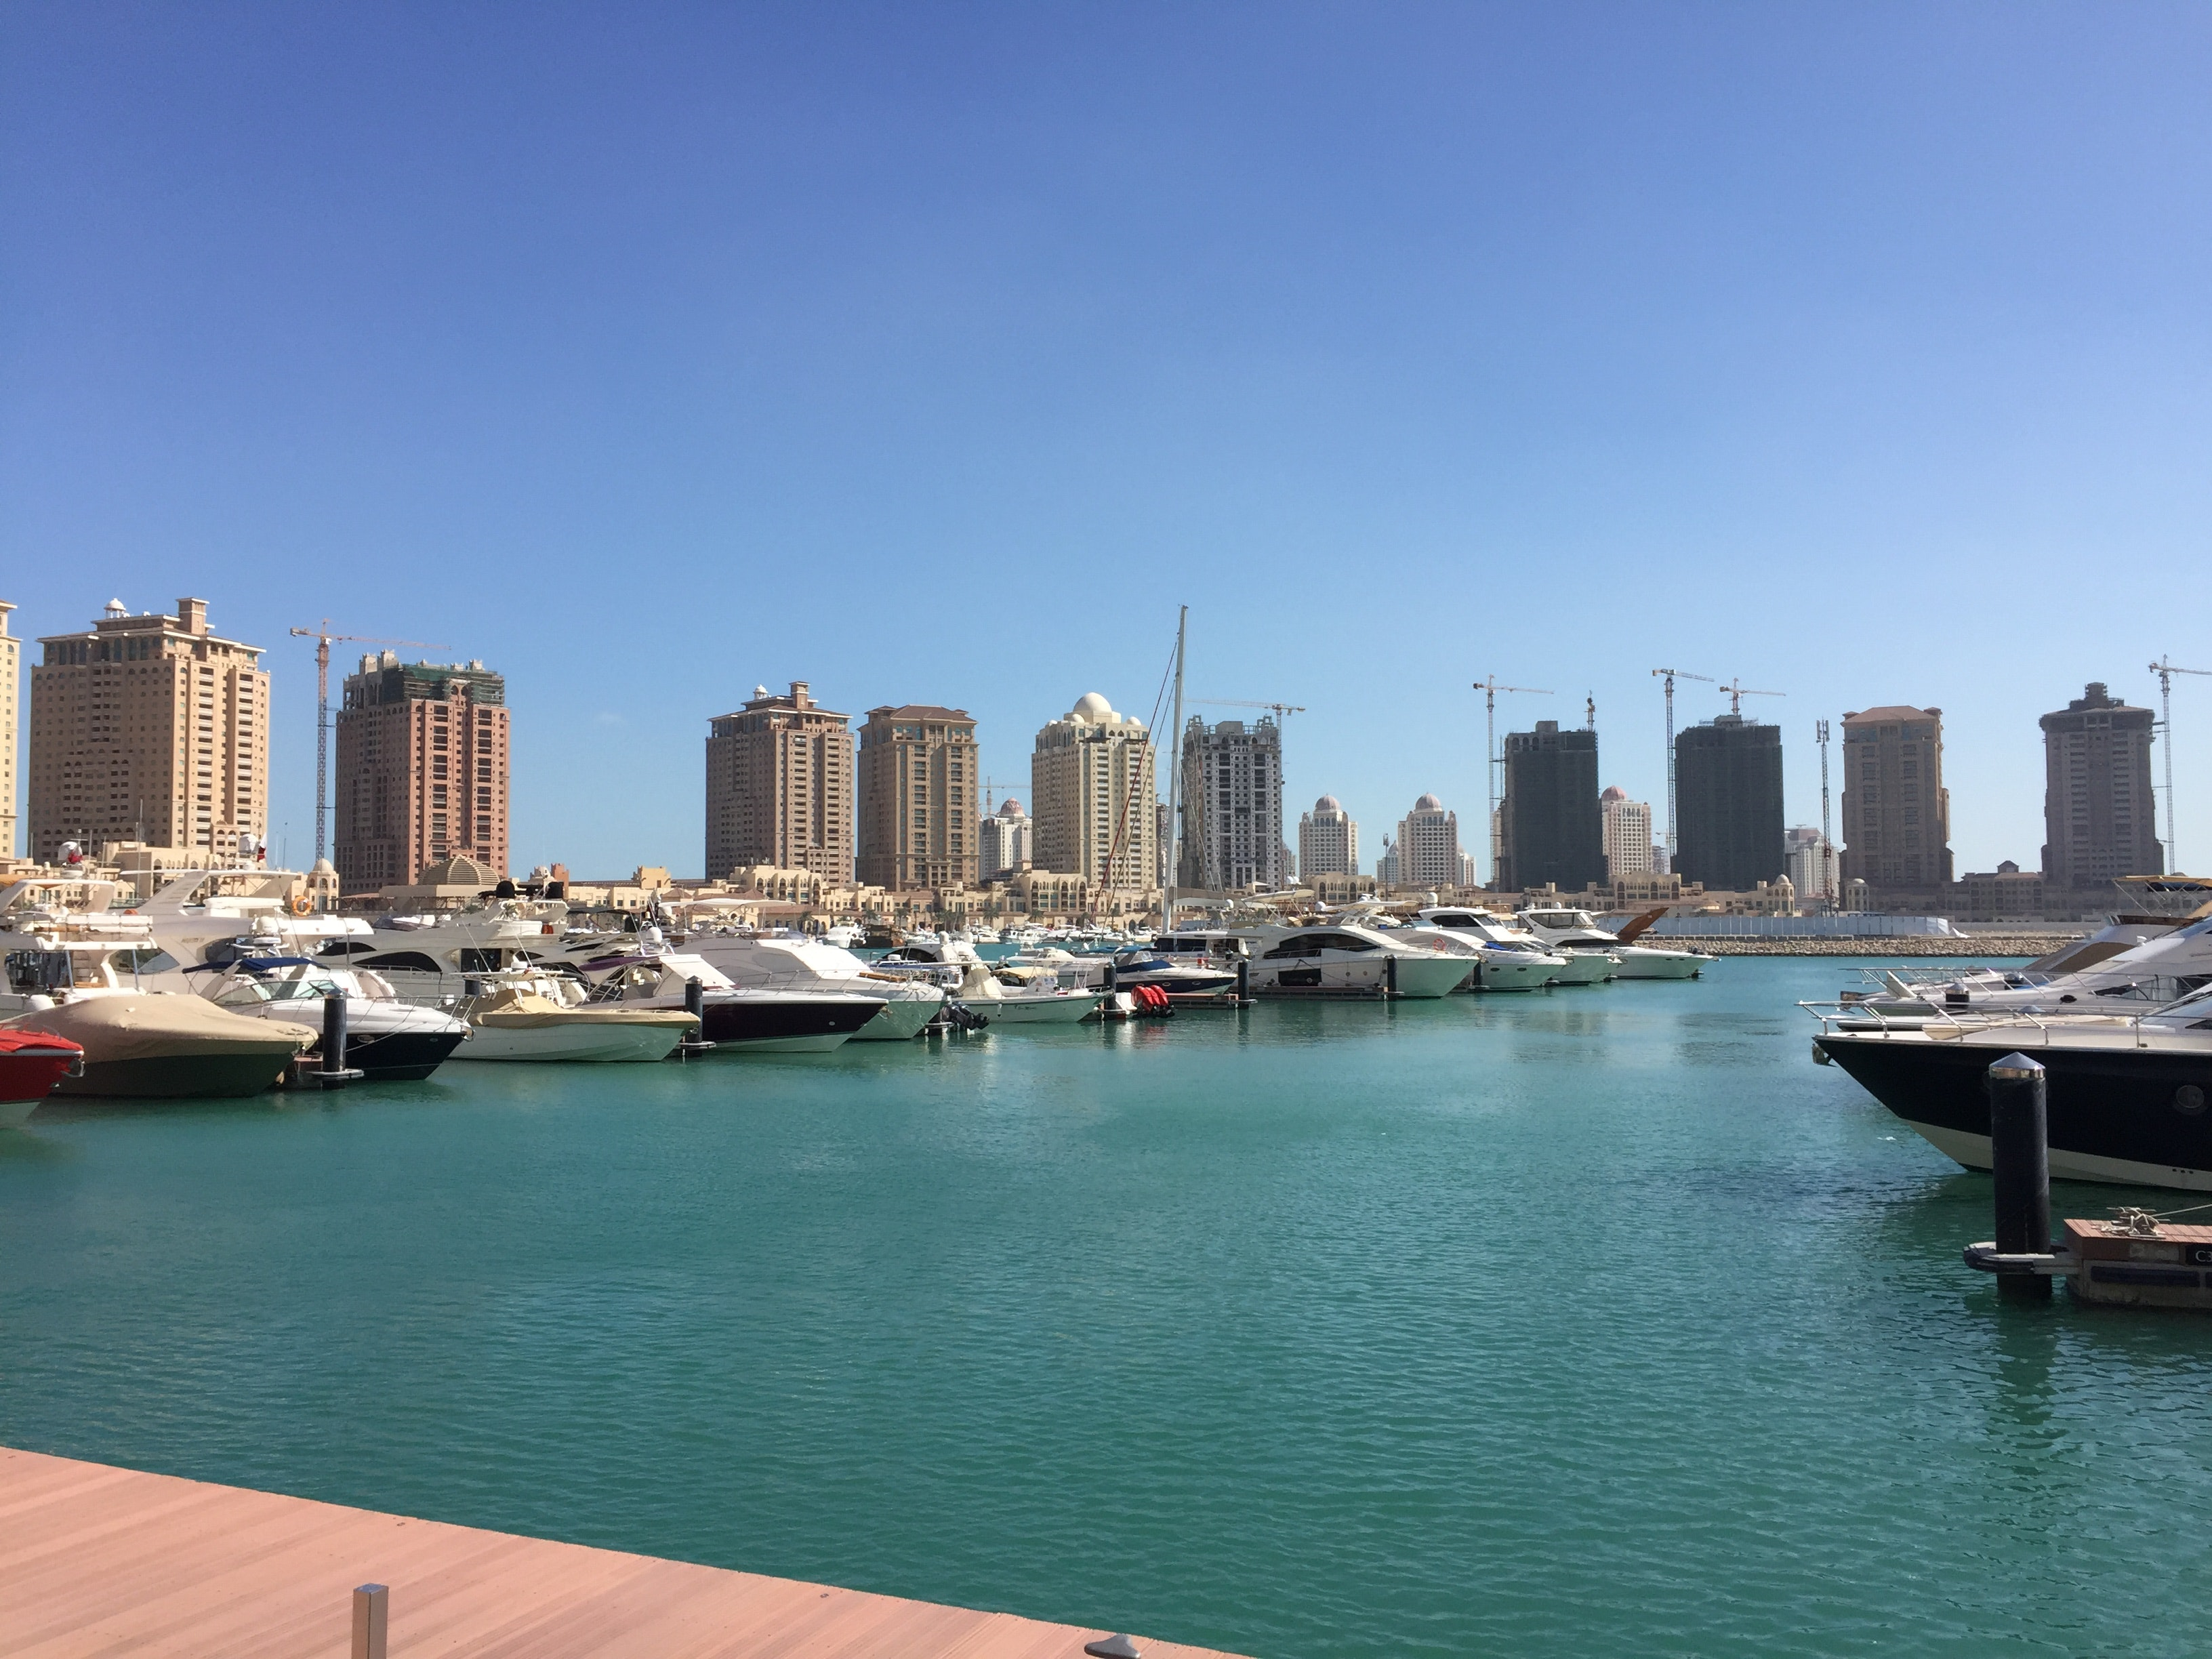 The Pearl, Qatar's own artificial island